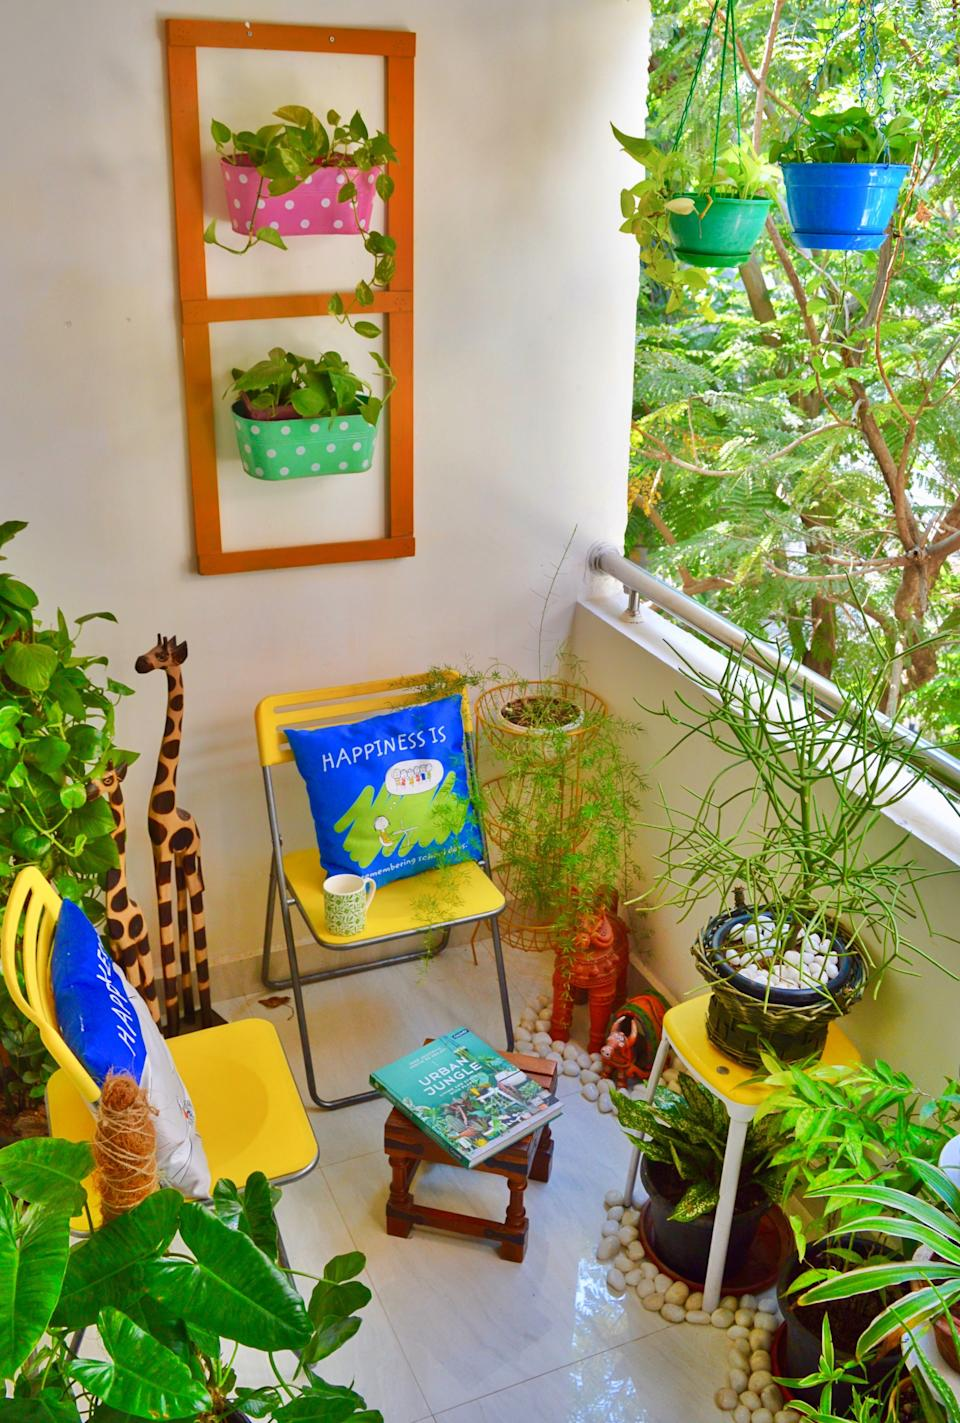 The cosy balcony garden accommodates a sit-out space. The tiered plant-holder in the far corner is a repurposed vegetable storage unit and the wooden wall frame has been upcycled from packing material.